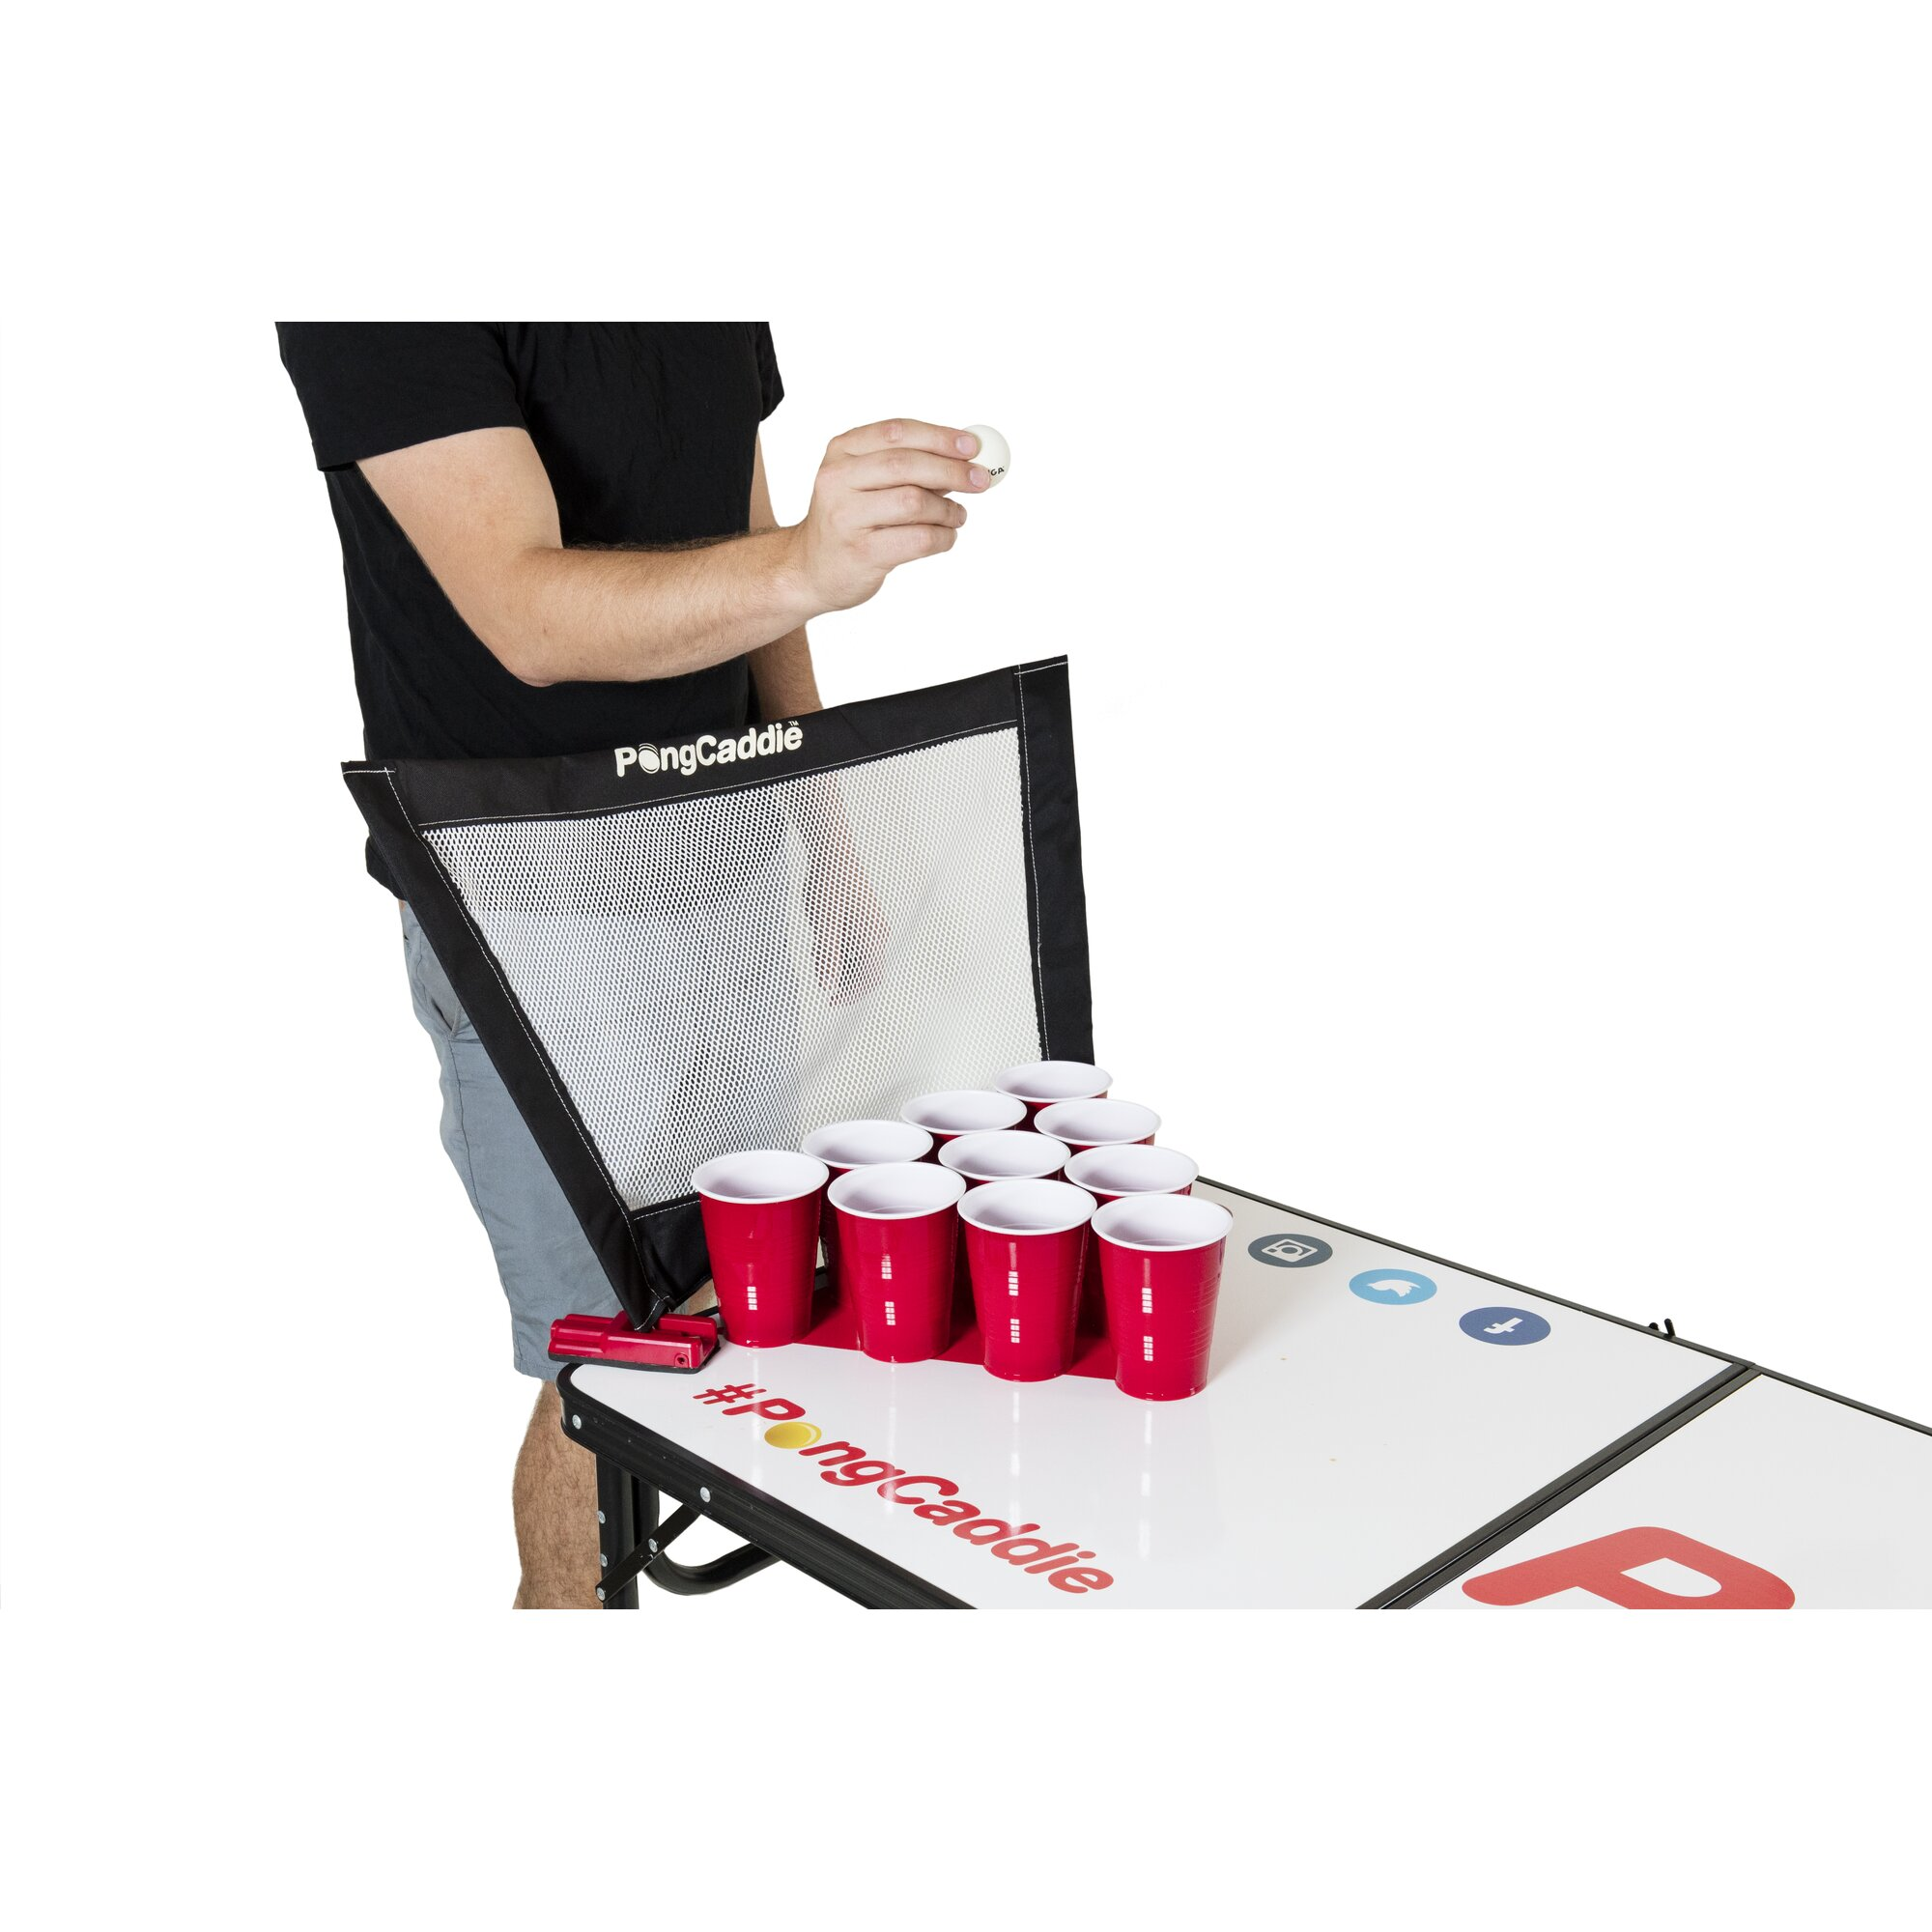 Beer pong table dimensions - Beer Pong Table